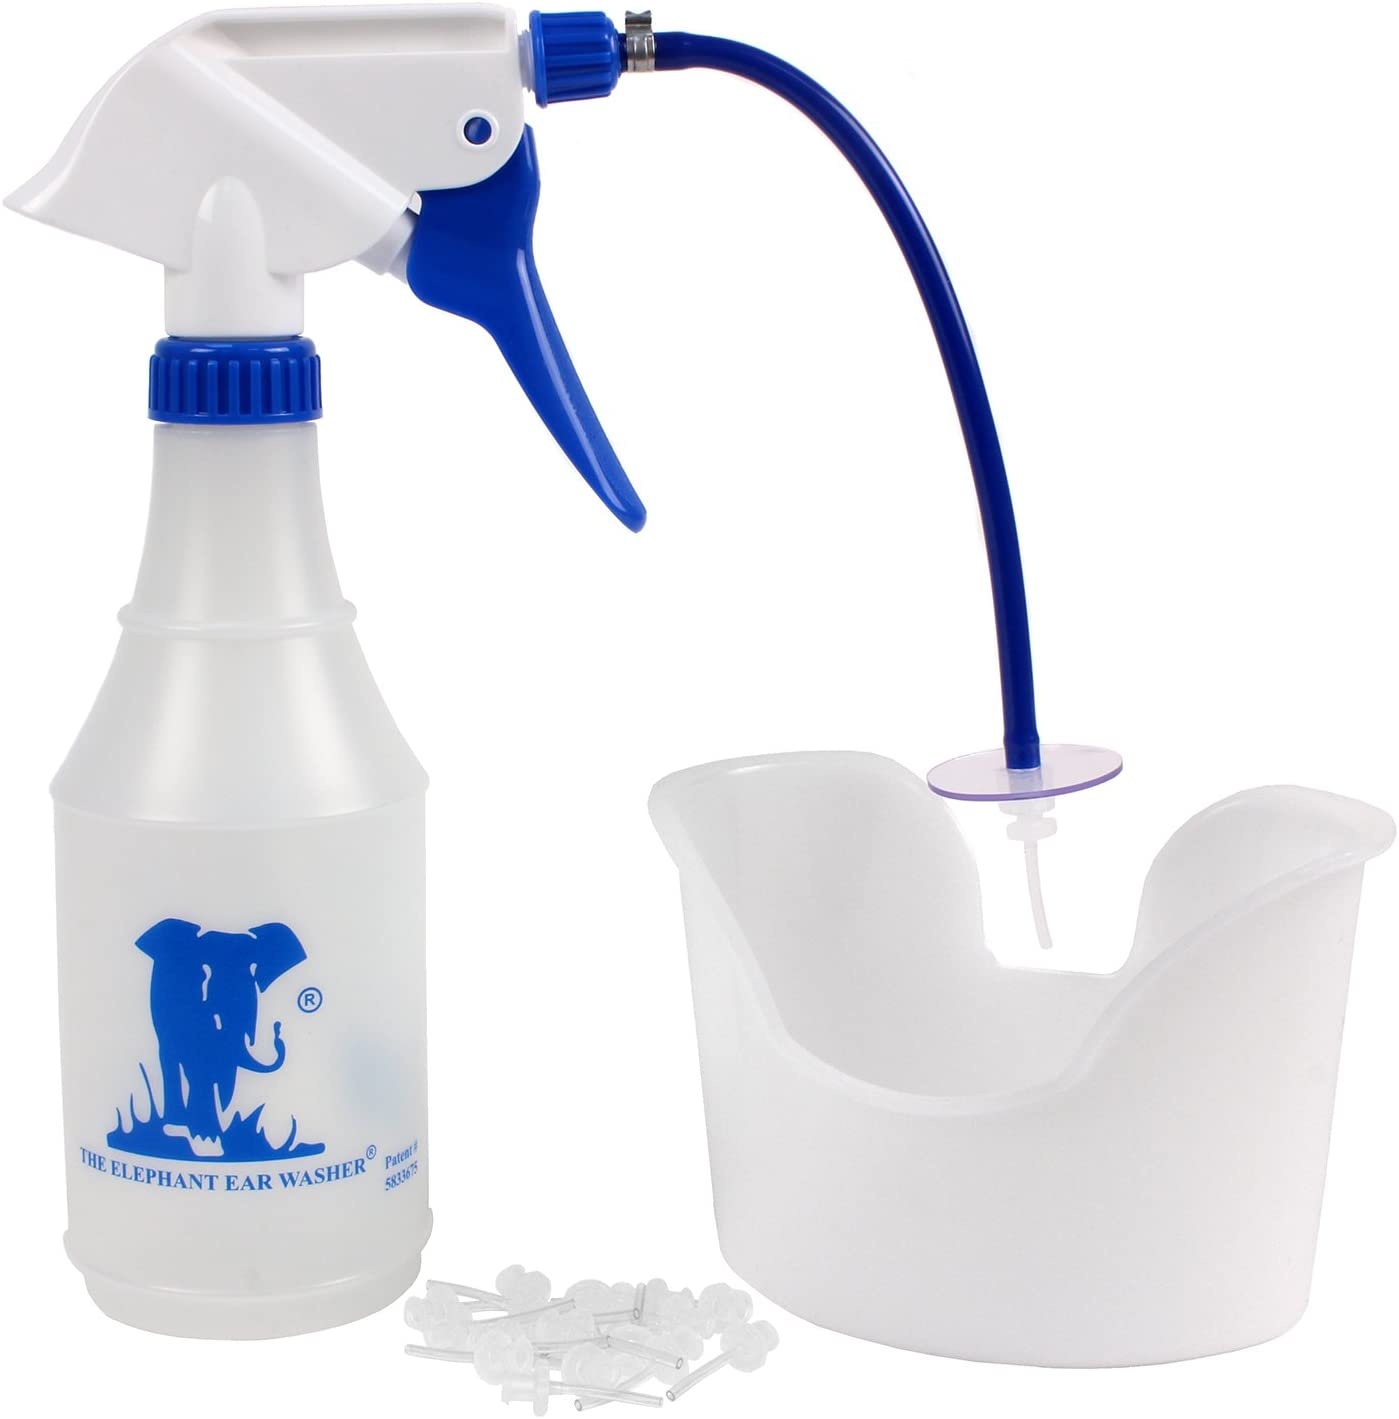 Doctor Easy Very popular Elephant Max 69% OFF Ear Washer Remover Bottle - System Wax